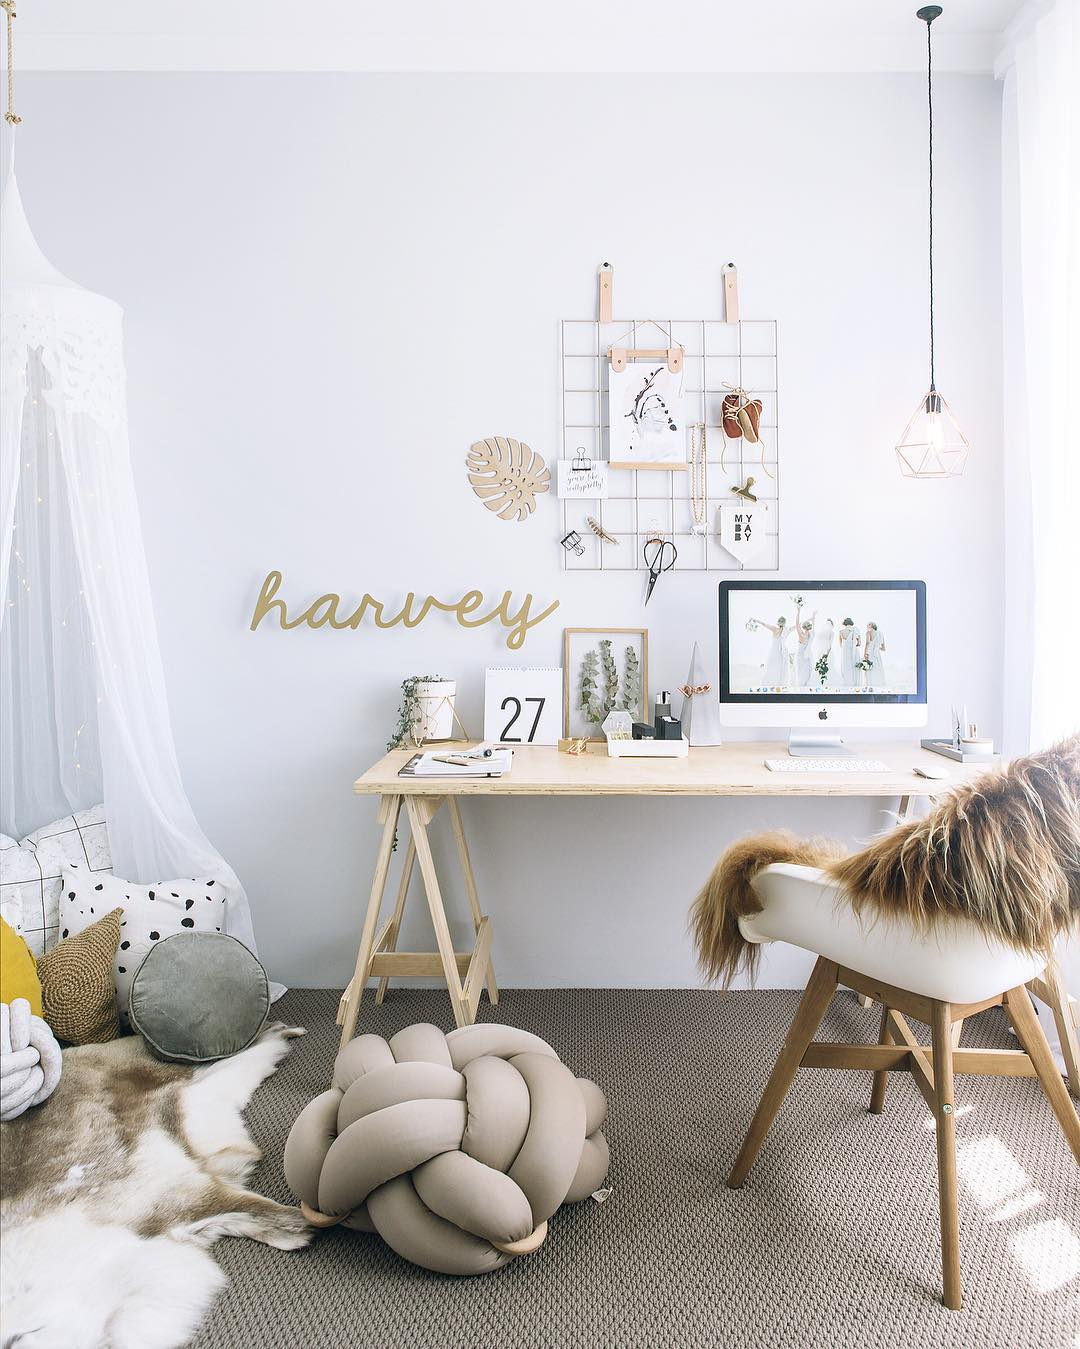 This darling home office retreat is #goals - Daily Dream Decor